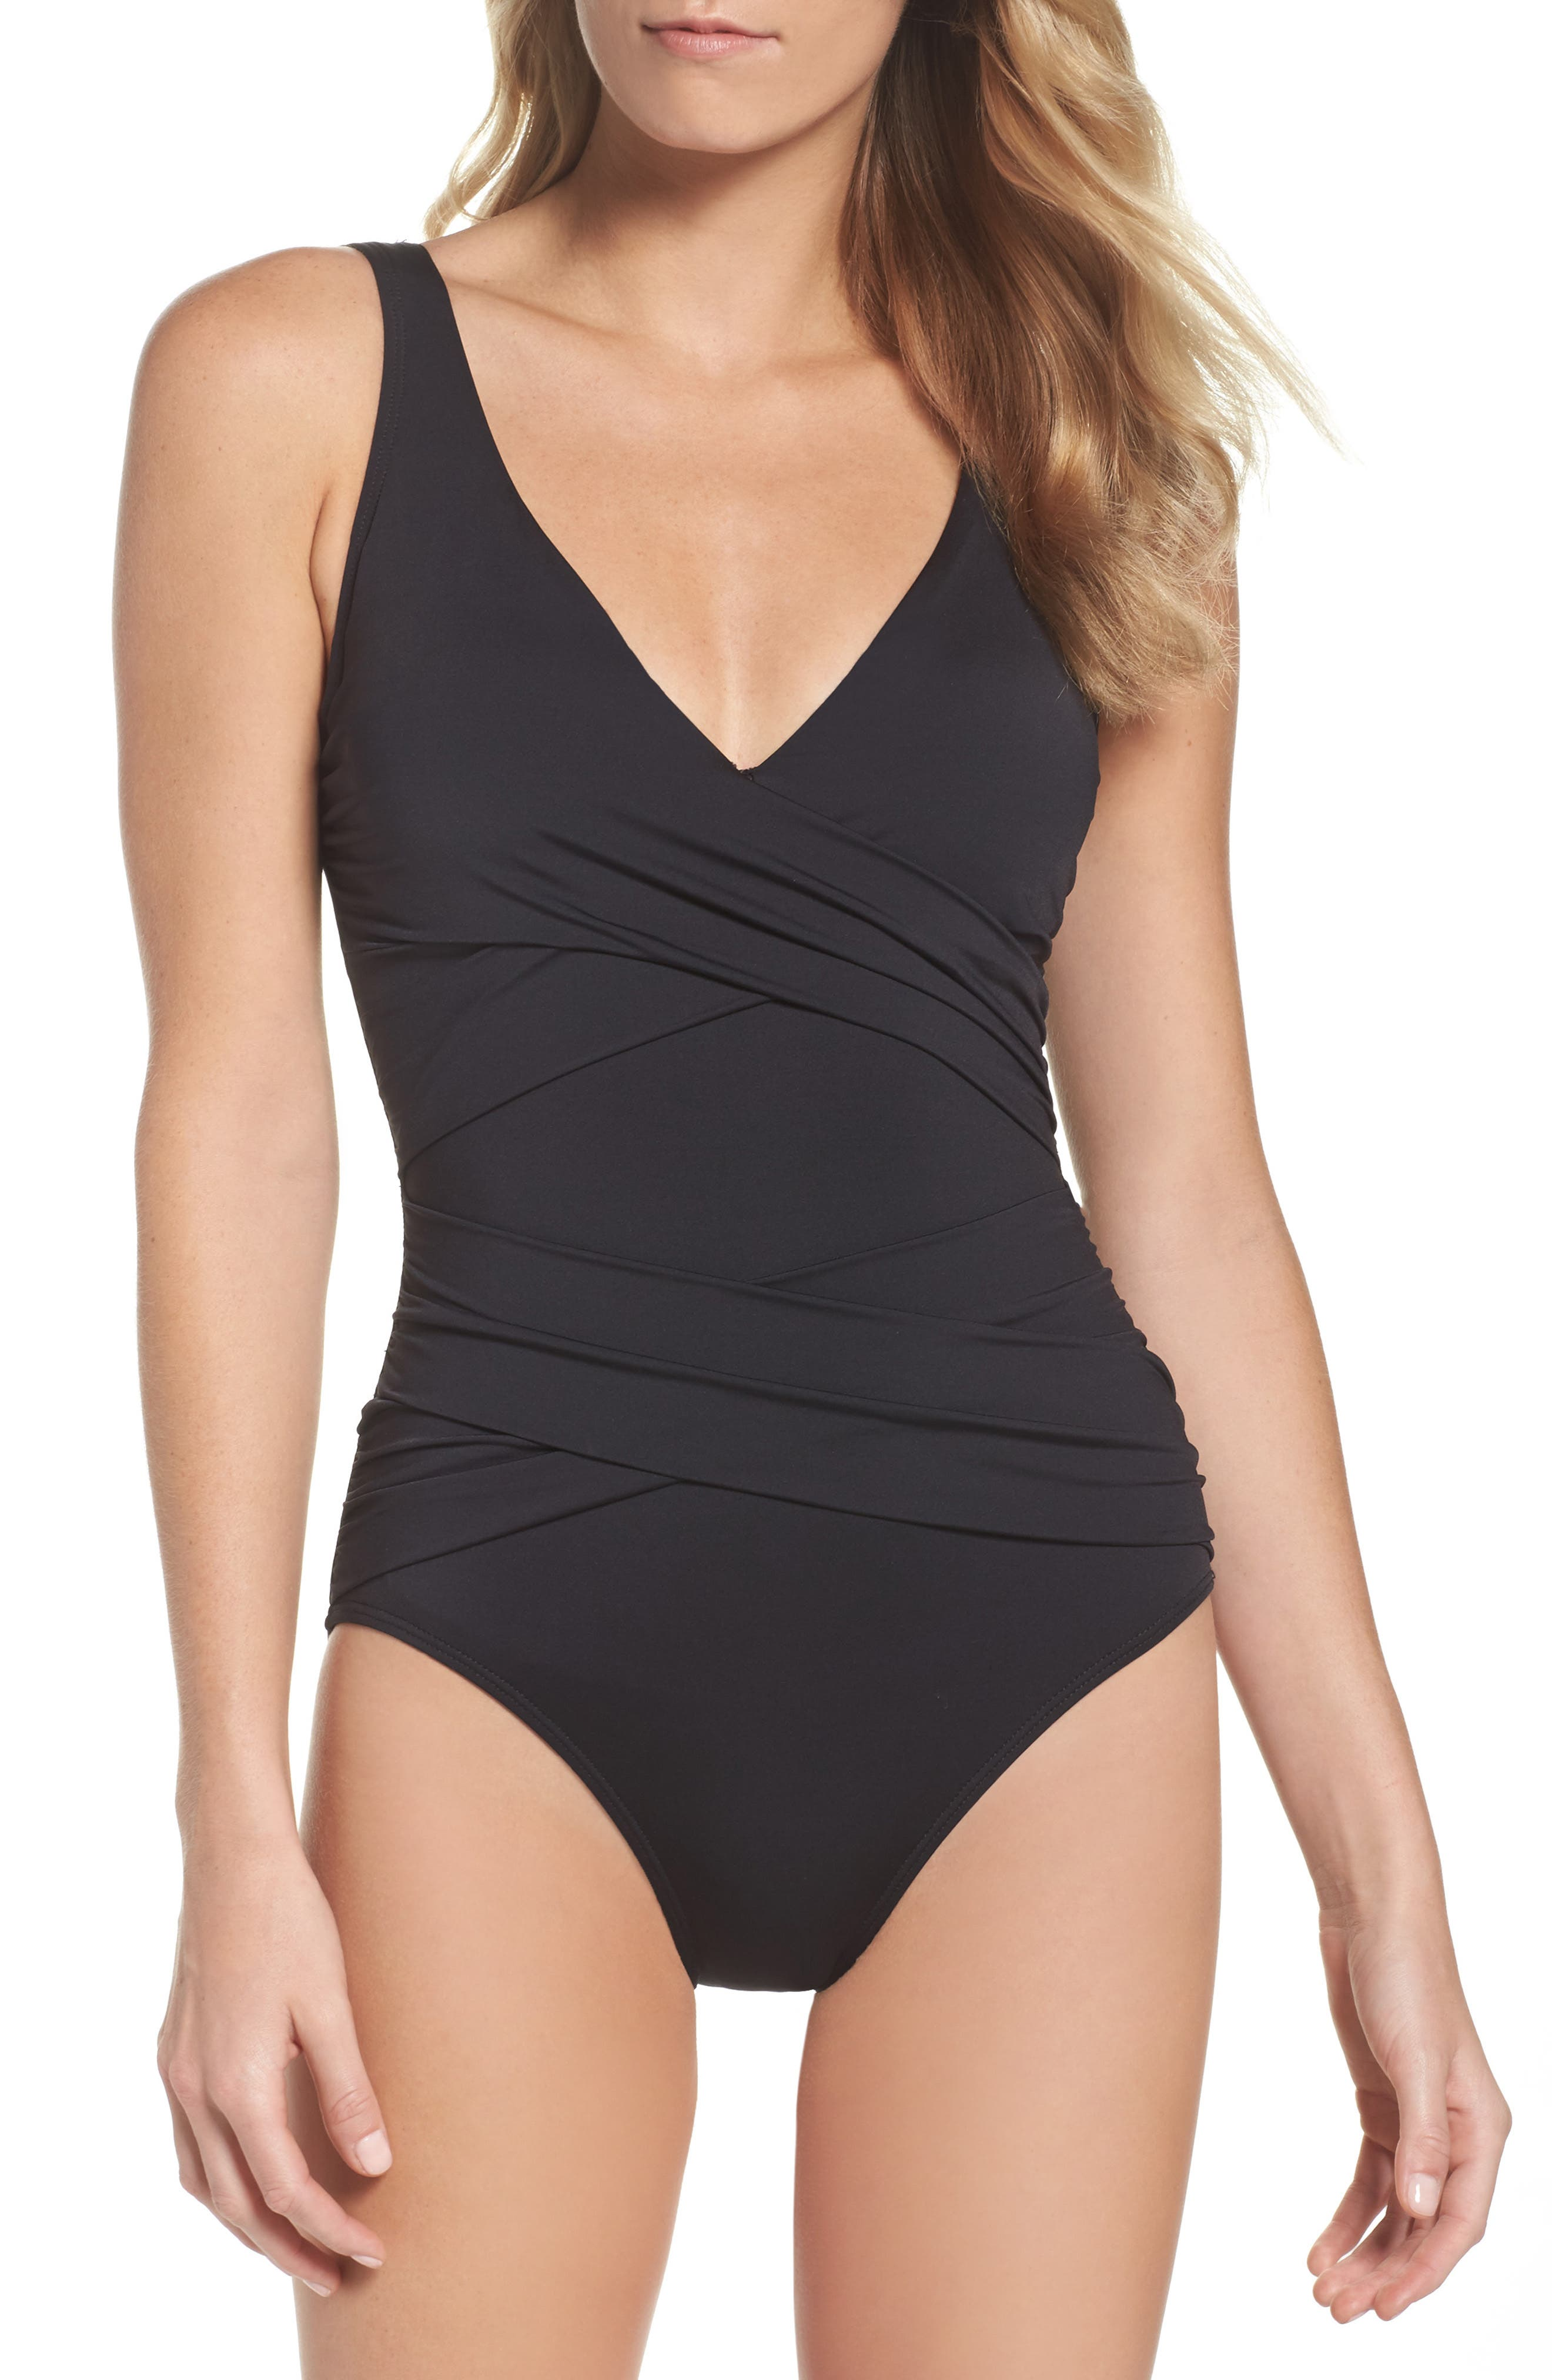 Pearl One-Piece Swimsuit,                         Main,                         color, Black